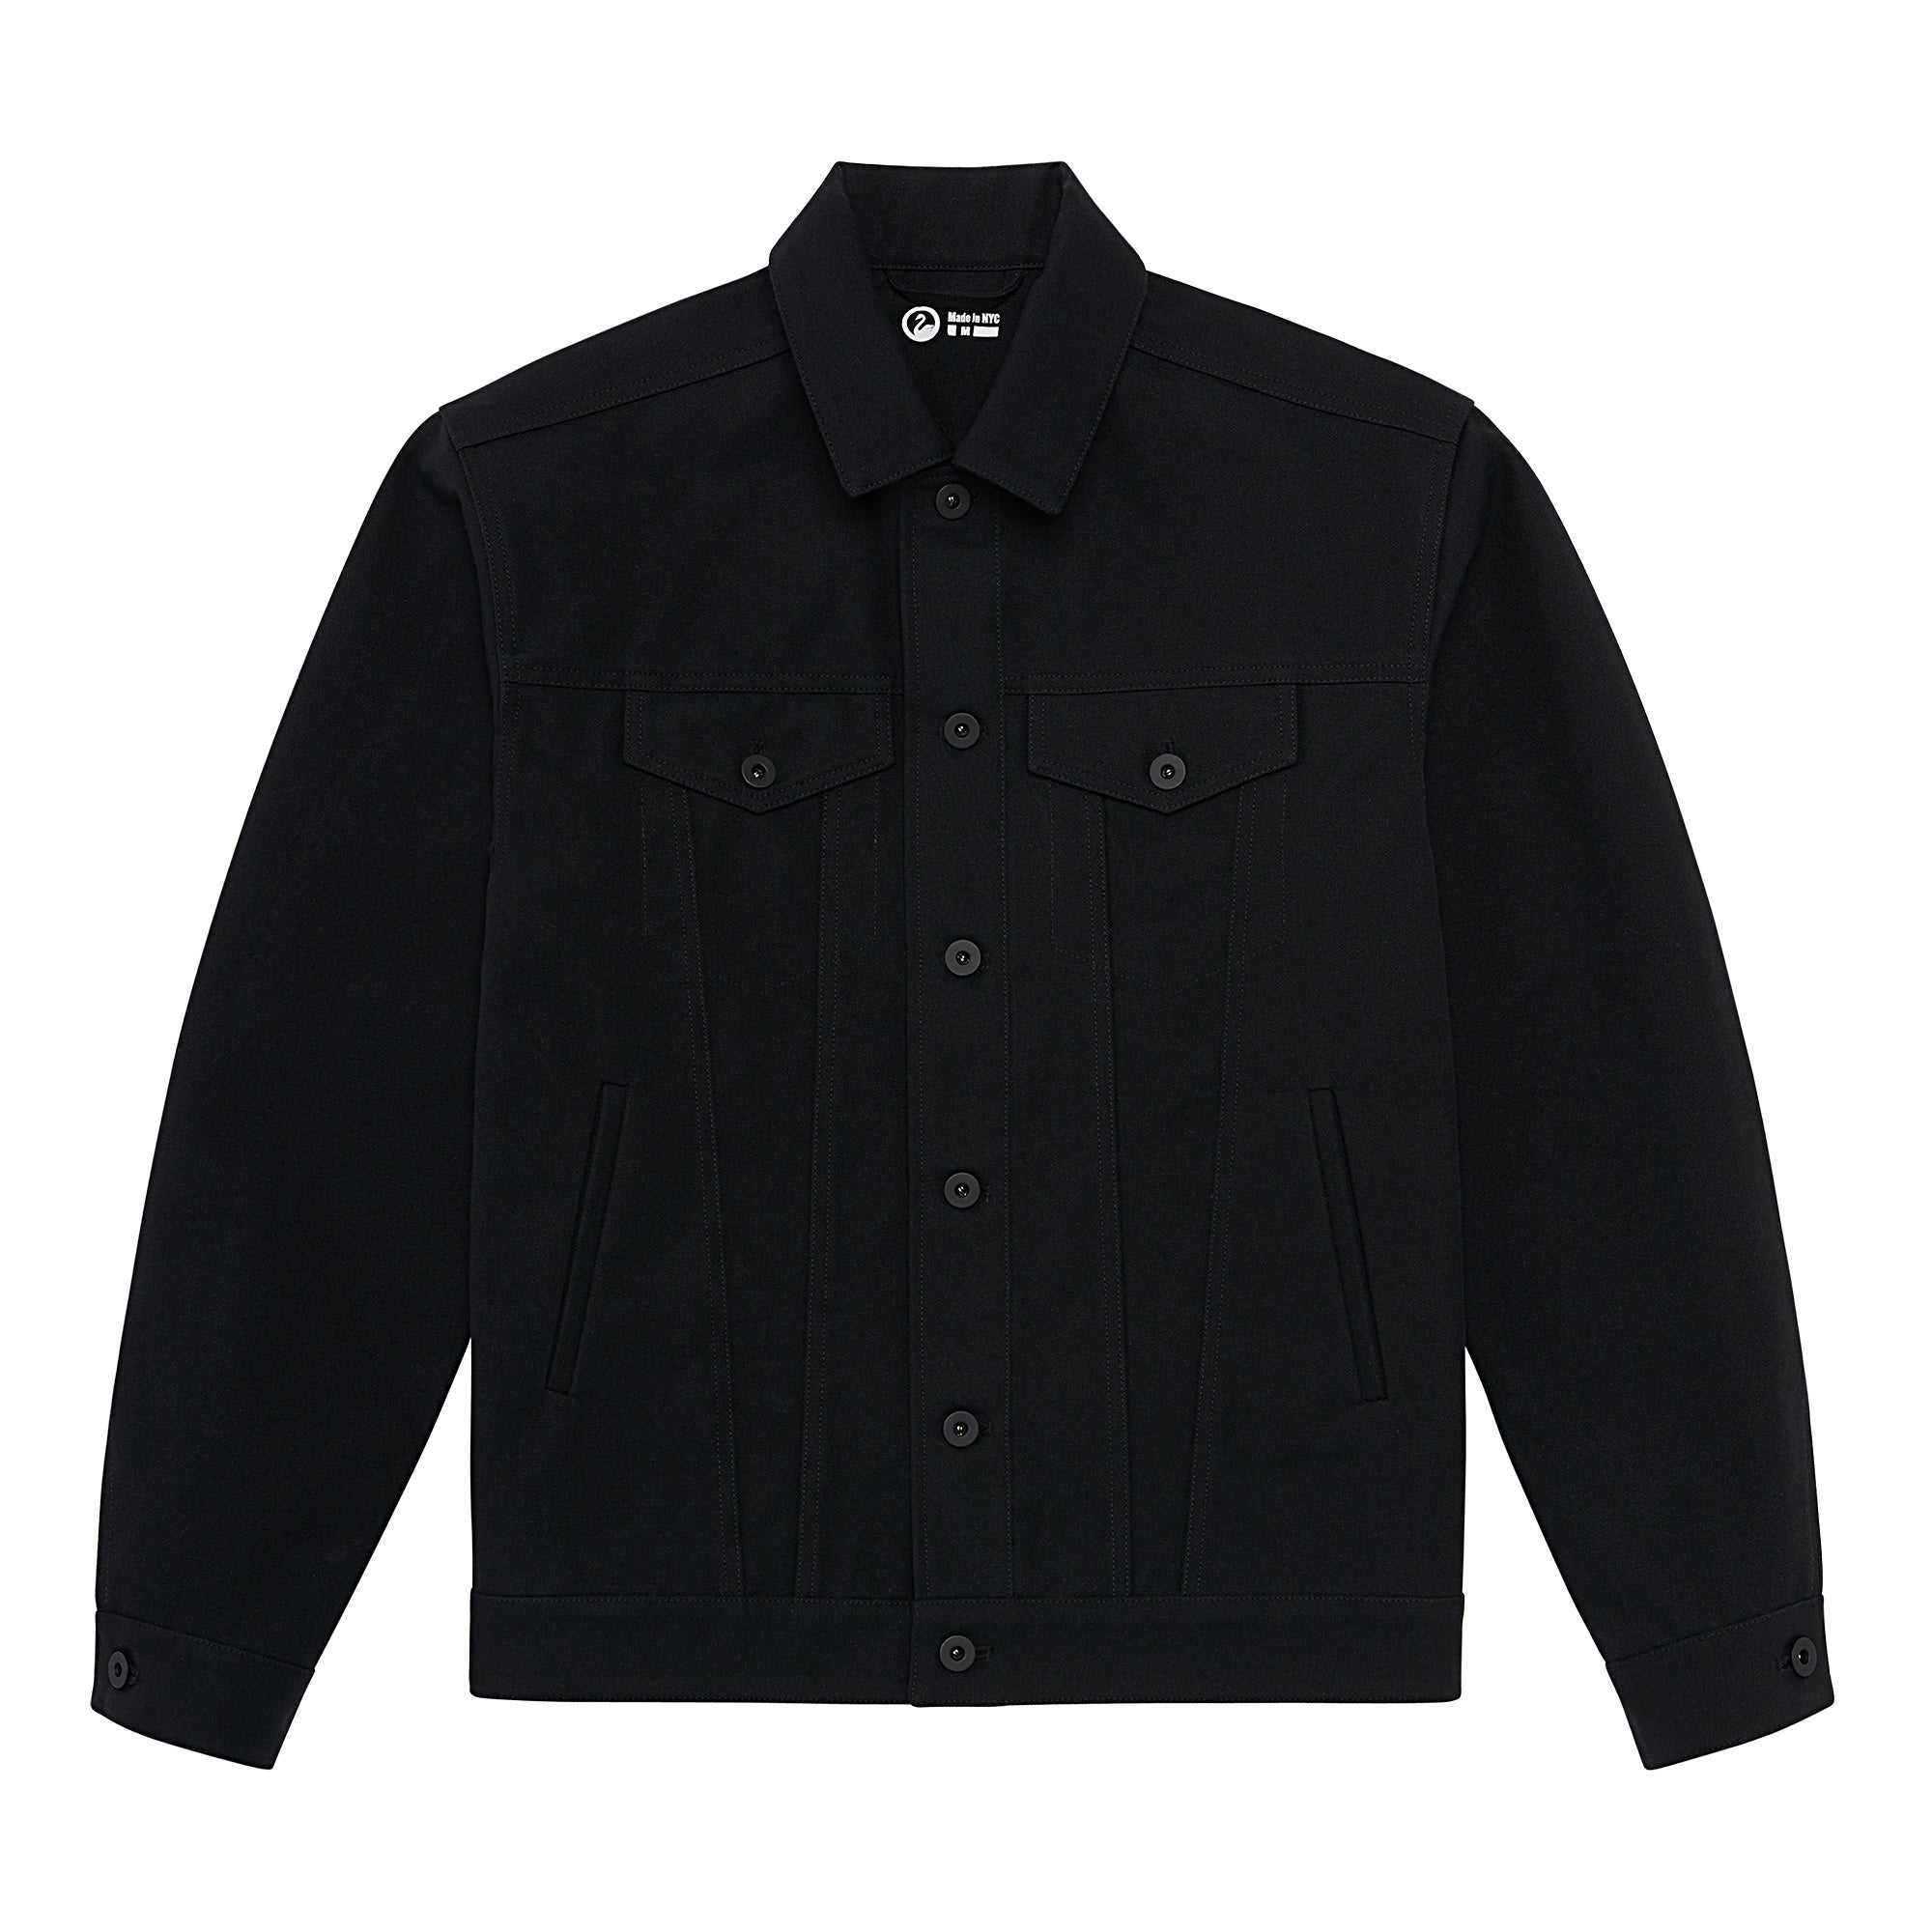 Full flat image of the Experiment 249 - Duckcloth Shank Jacket in Black